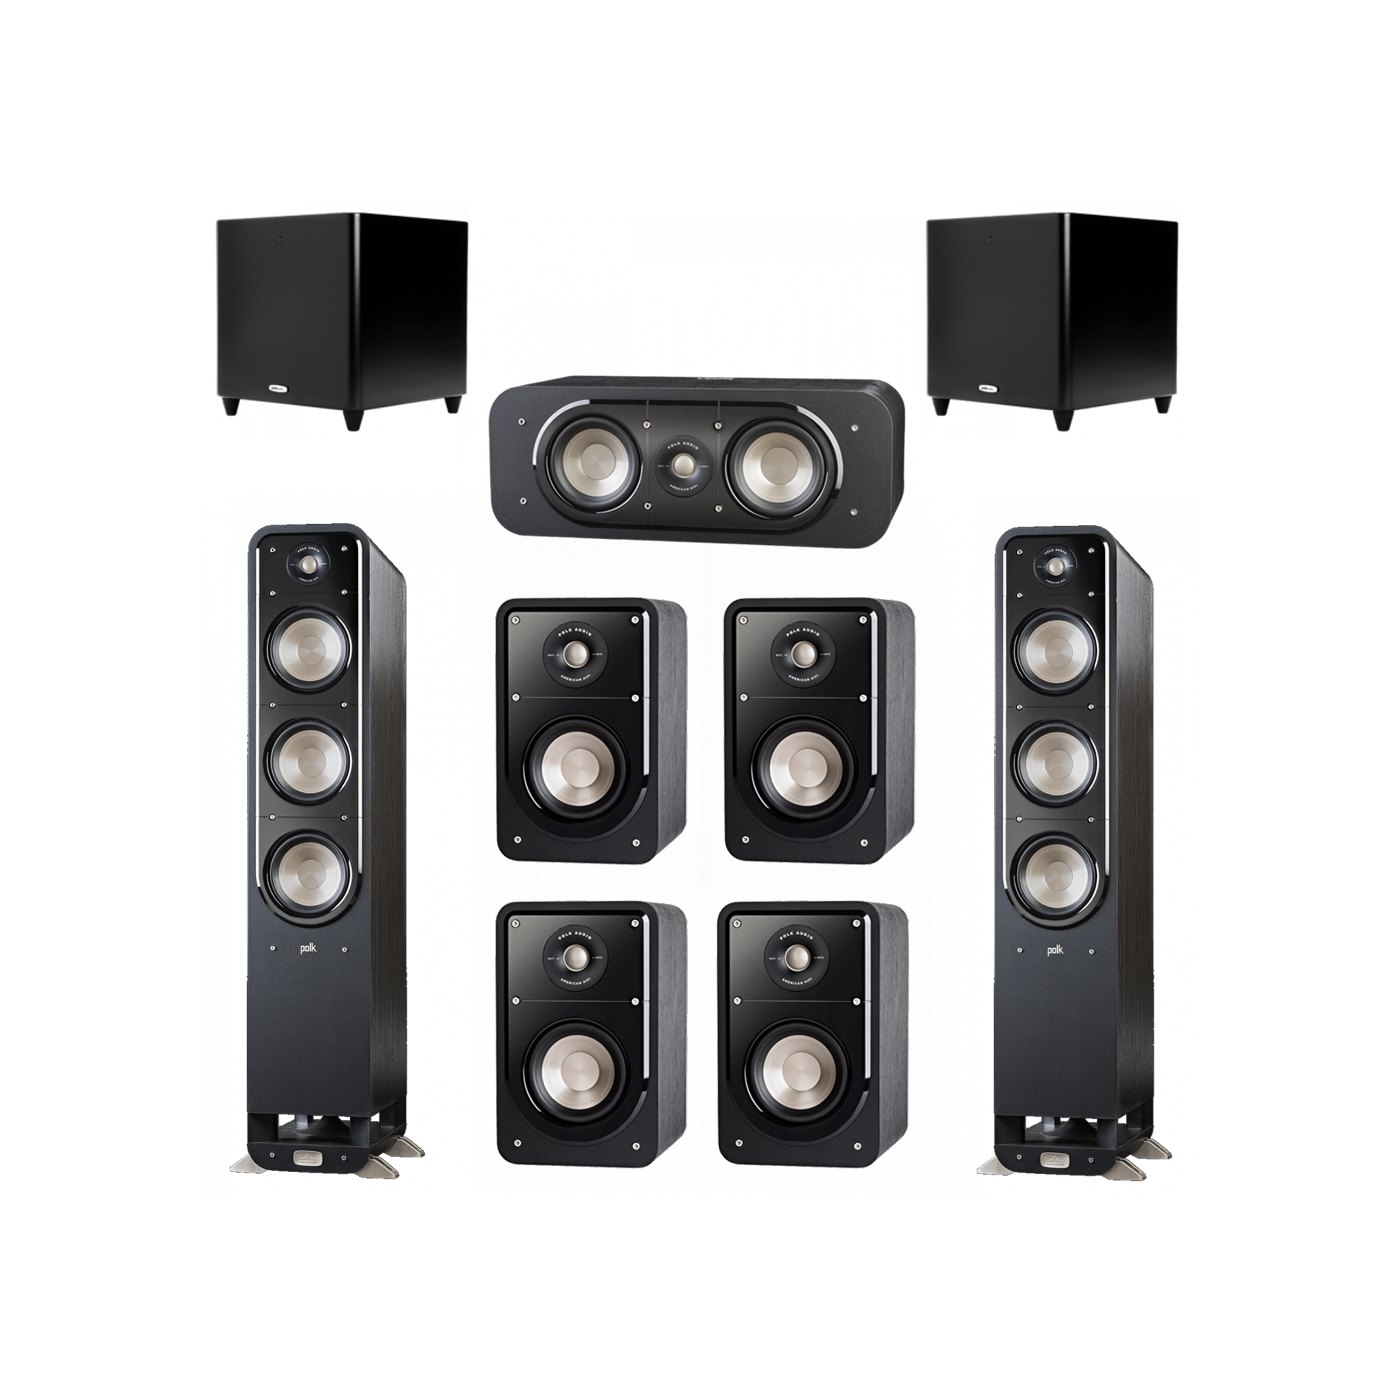 Polk Audio Signature 7.2 System with 2 S60 Tower Speaker, 1 Polk S30 Center Speaker, 4 Polk S15 Bookshelf Speaker, 2 Polk DSW PRO 660 wi Subwoofer